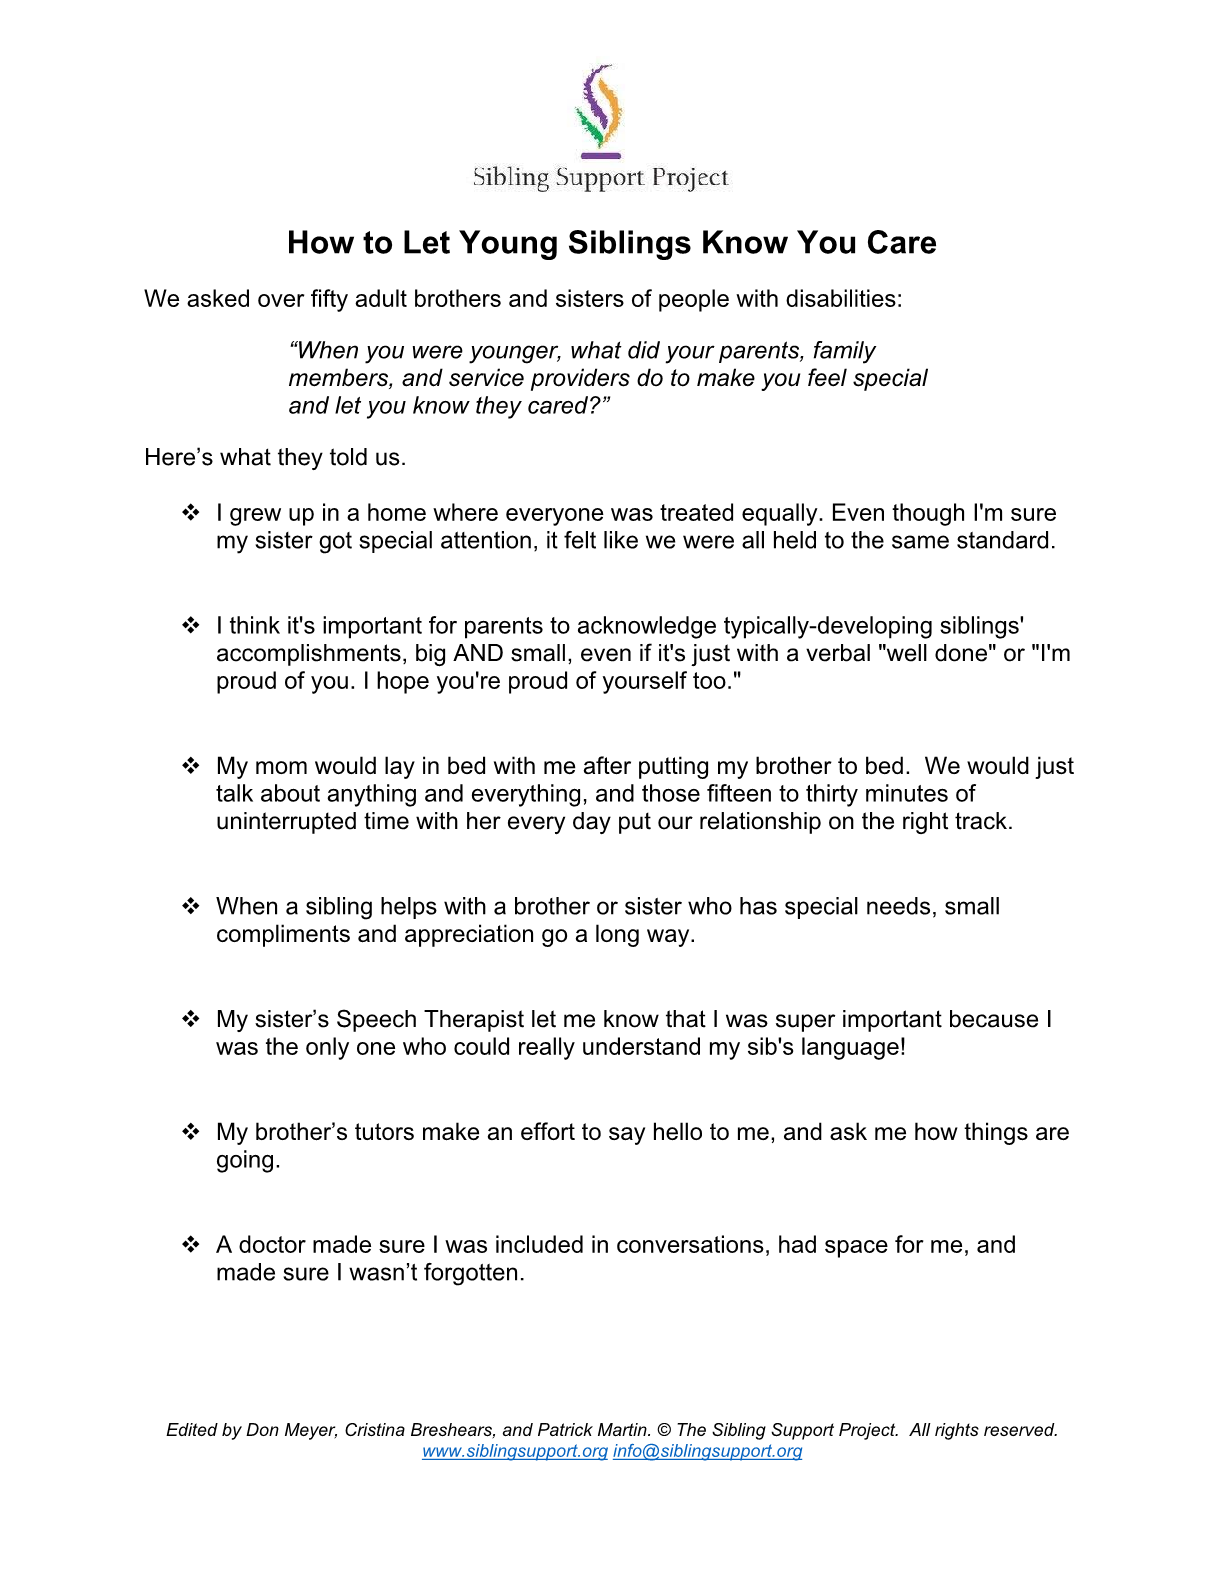 How To Let Young Siblings Know You Care